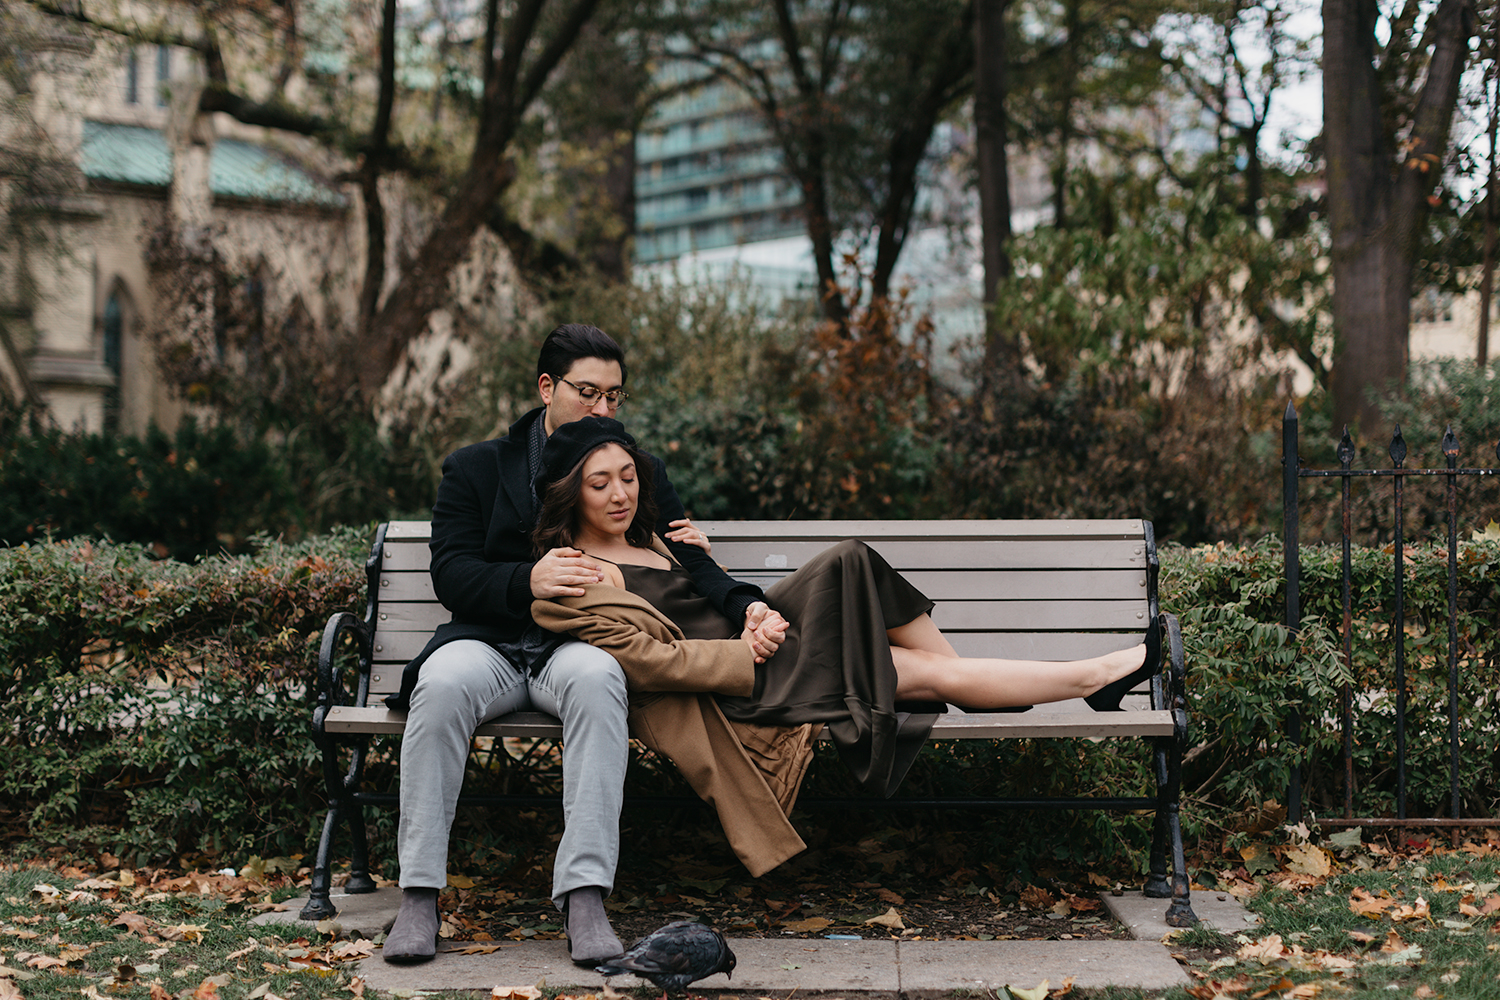 toronto's-alternative-engagement-photographer-best-in-toronto-wedding-photography-ryanne-hollies-photography-moody-artistic-high-fashion-lifestyle-engagement-photos-st-james-park-downtown-vogue-inspired-models.jpg